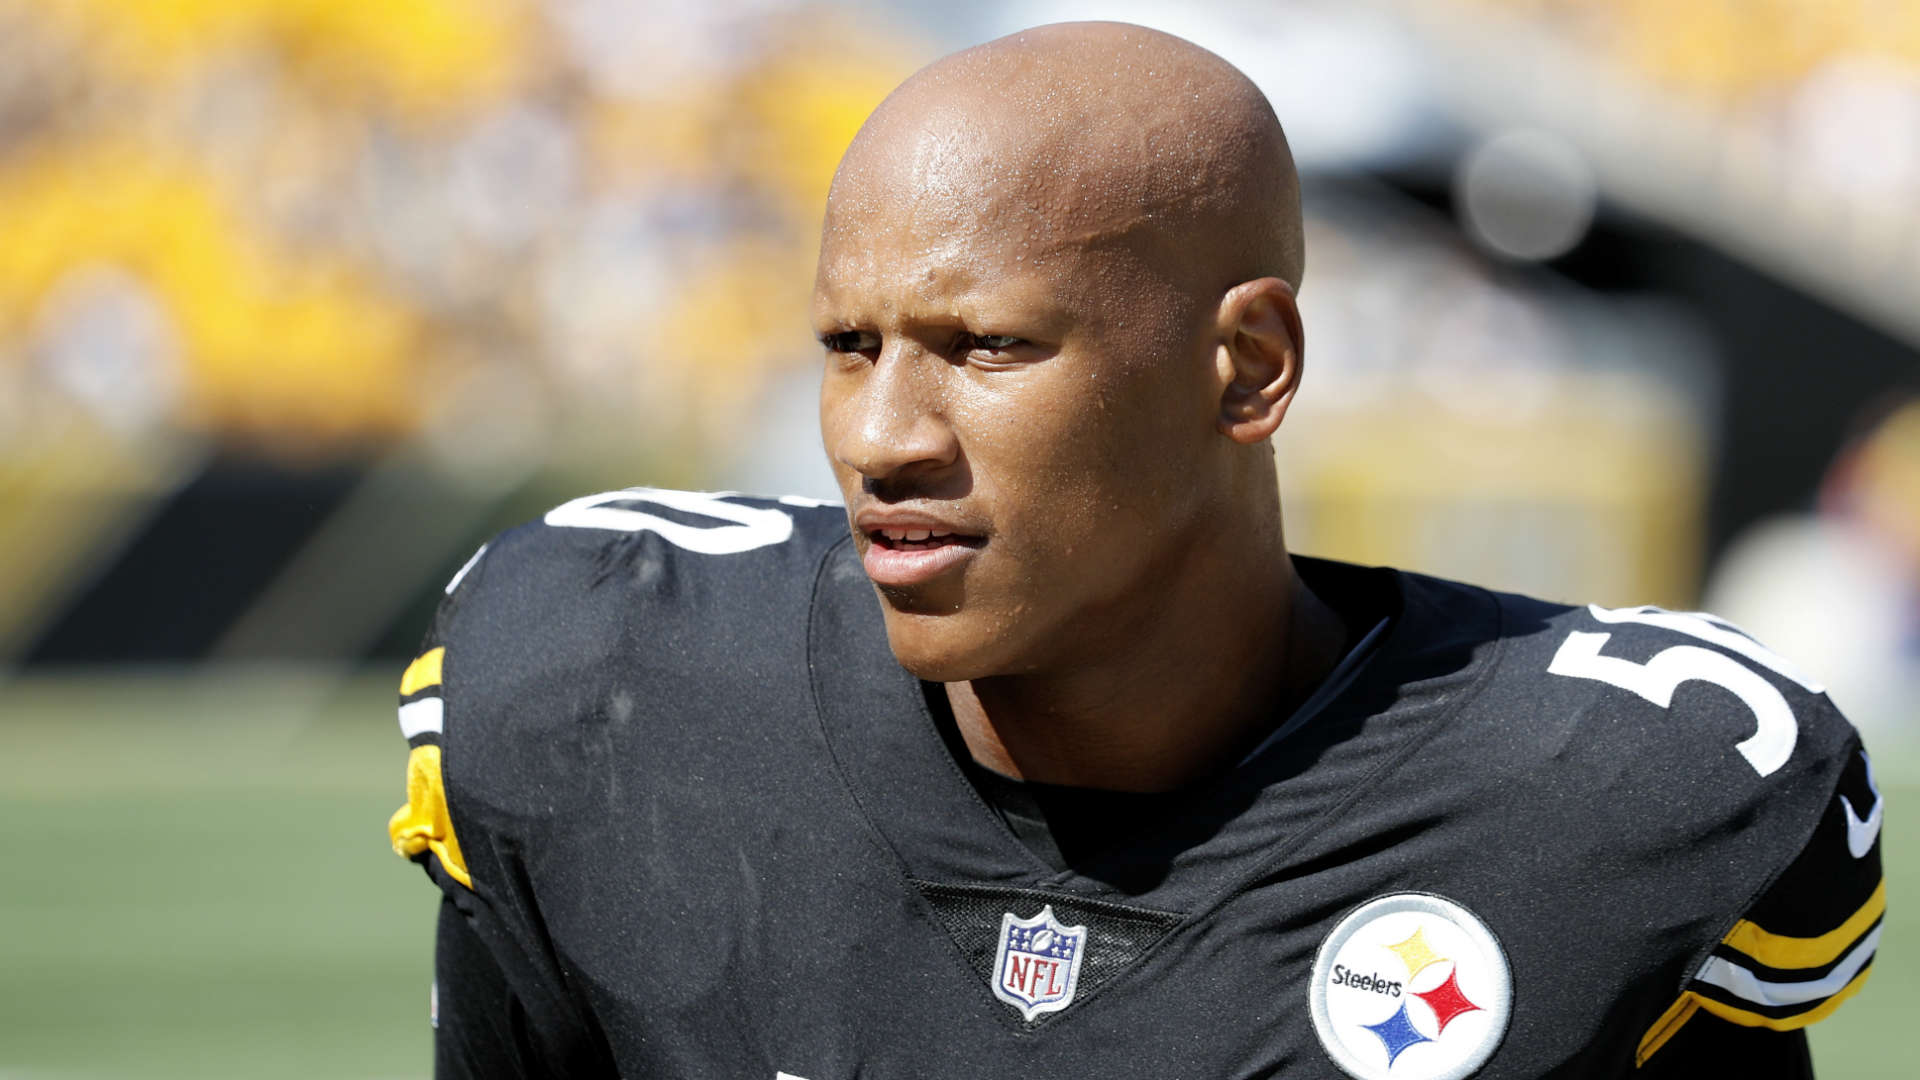 Art Rooney II says Ryan Shazier will have role with Steelers